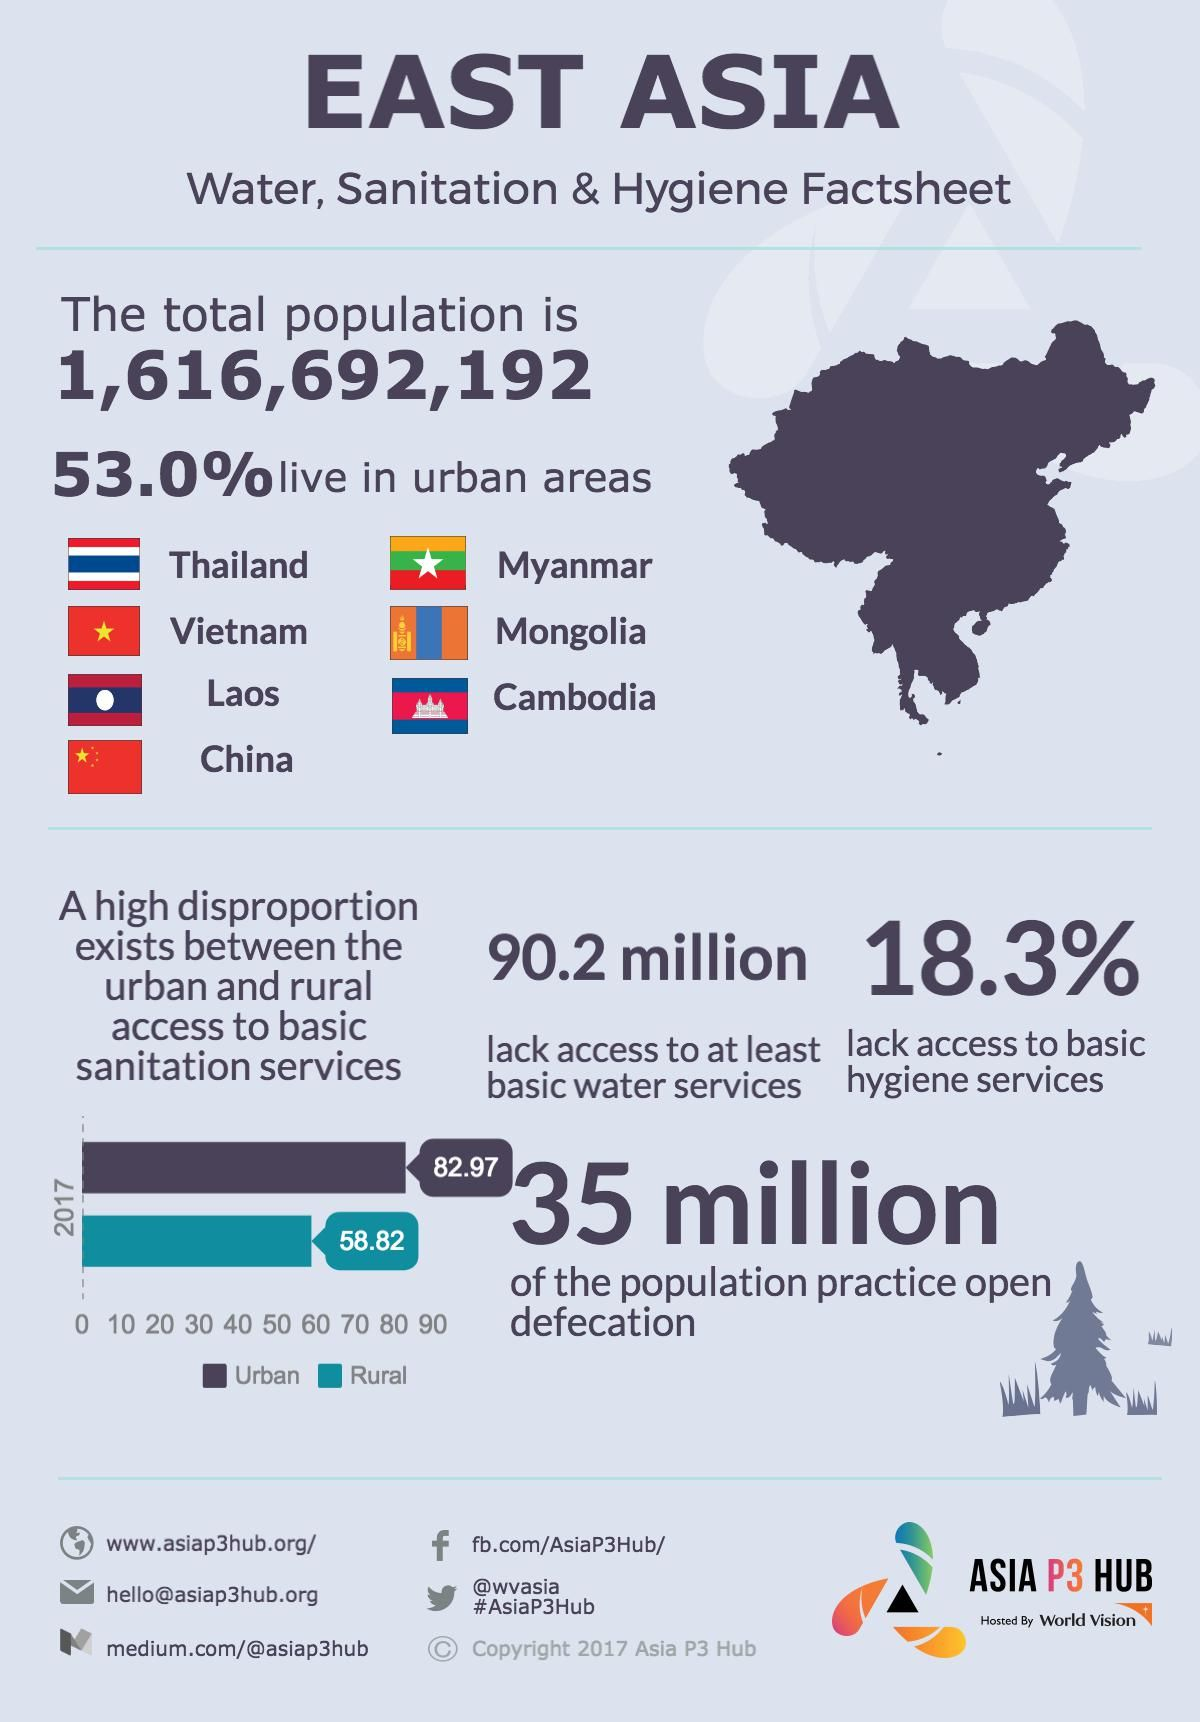 East Asia Wash Facts Be Sure To Check Out Our Website For More Information On How We Create Multi Sector Partnerships To Reduce W Asia Urban Area Hygiene